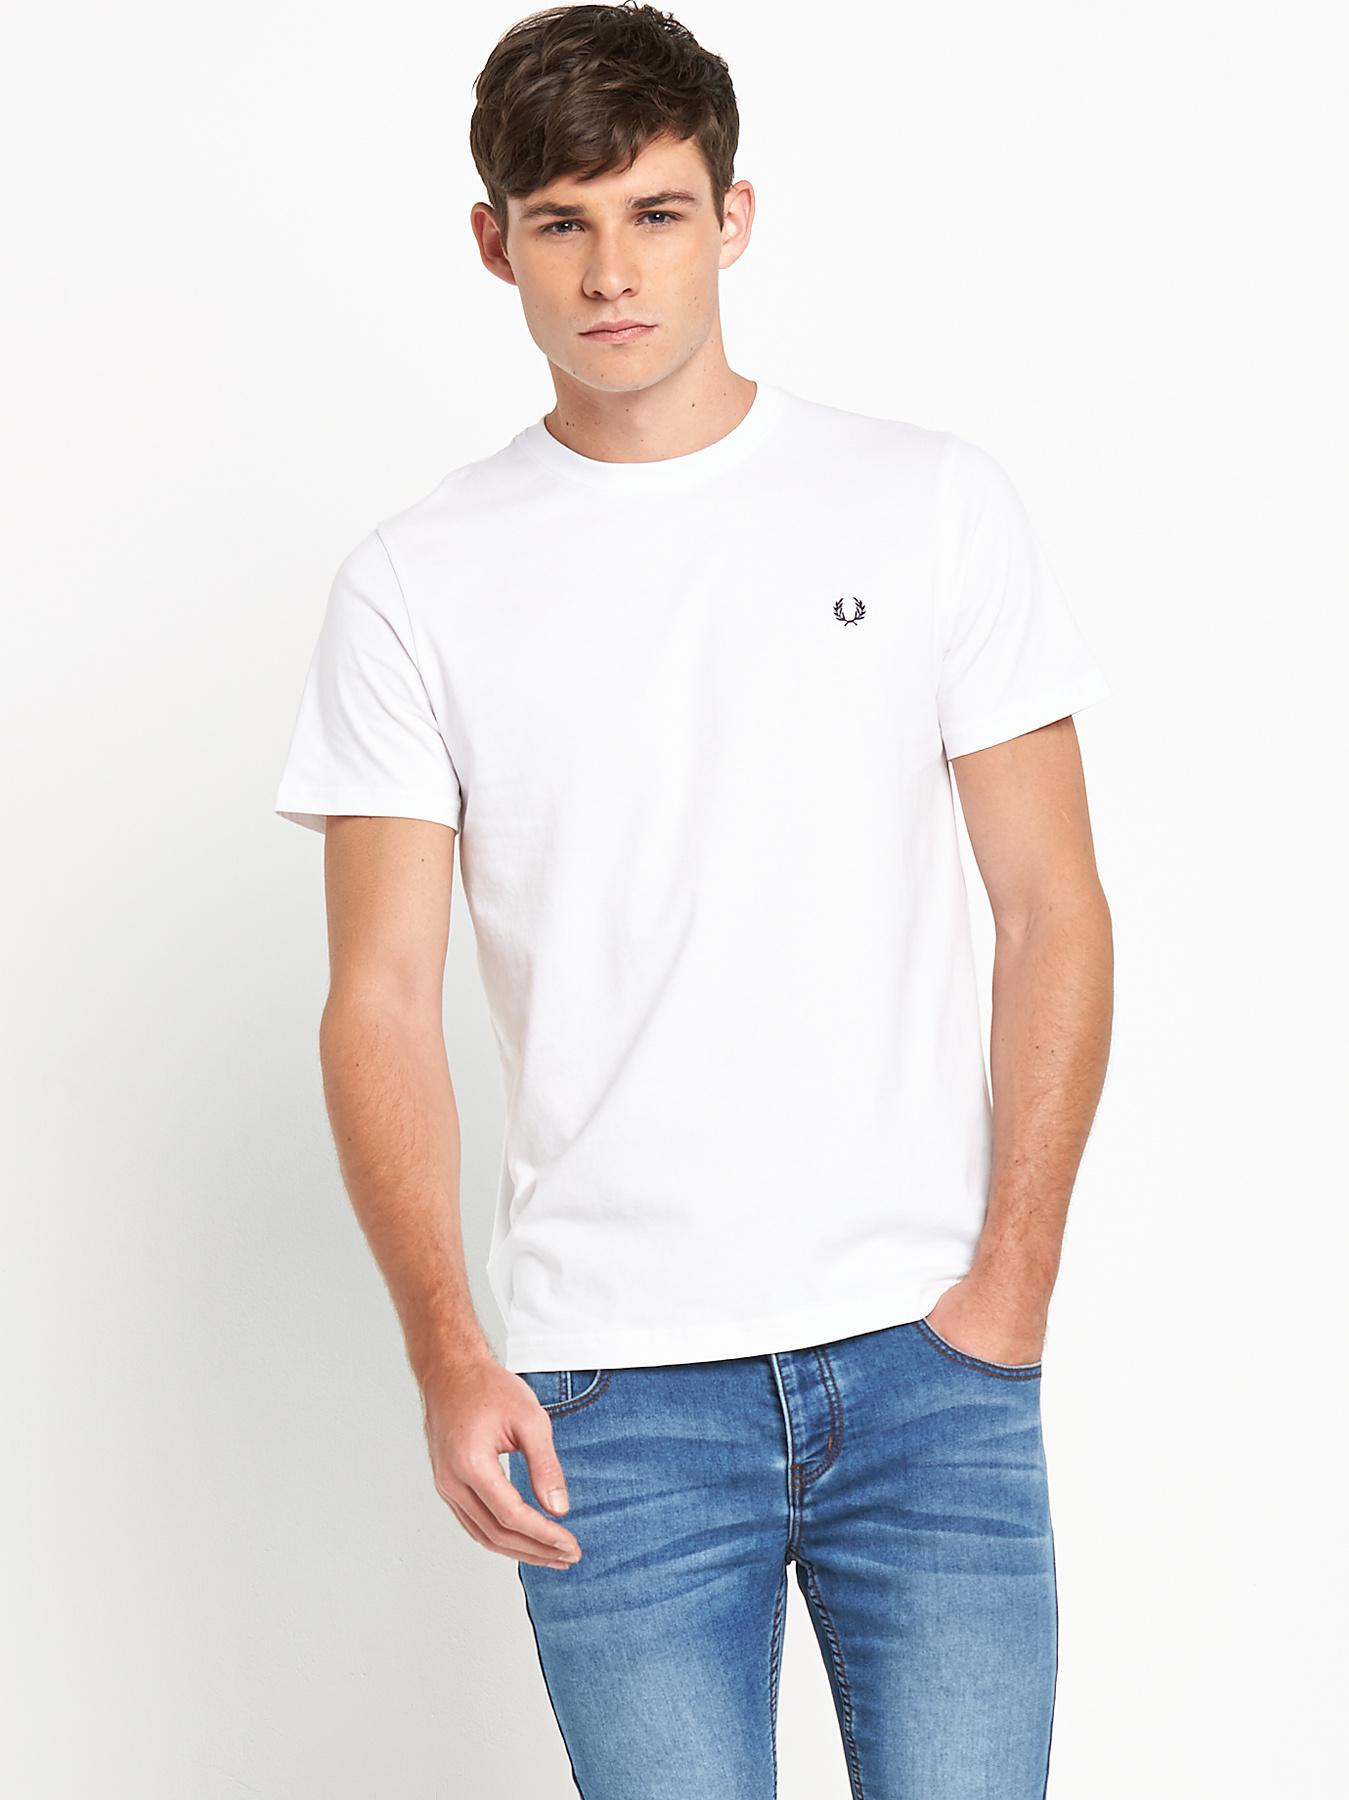 fred perry t shirt dress. Black Bedroom Furniture Sets. Home Design Ideas